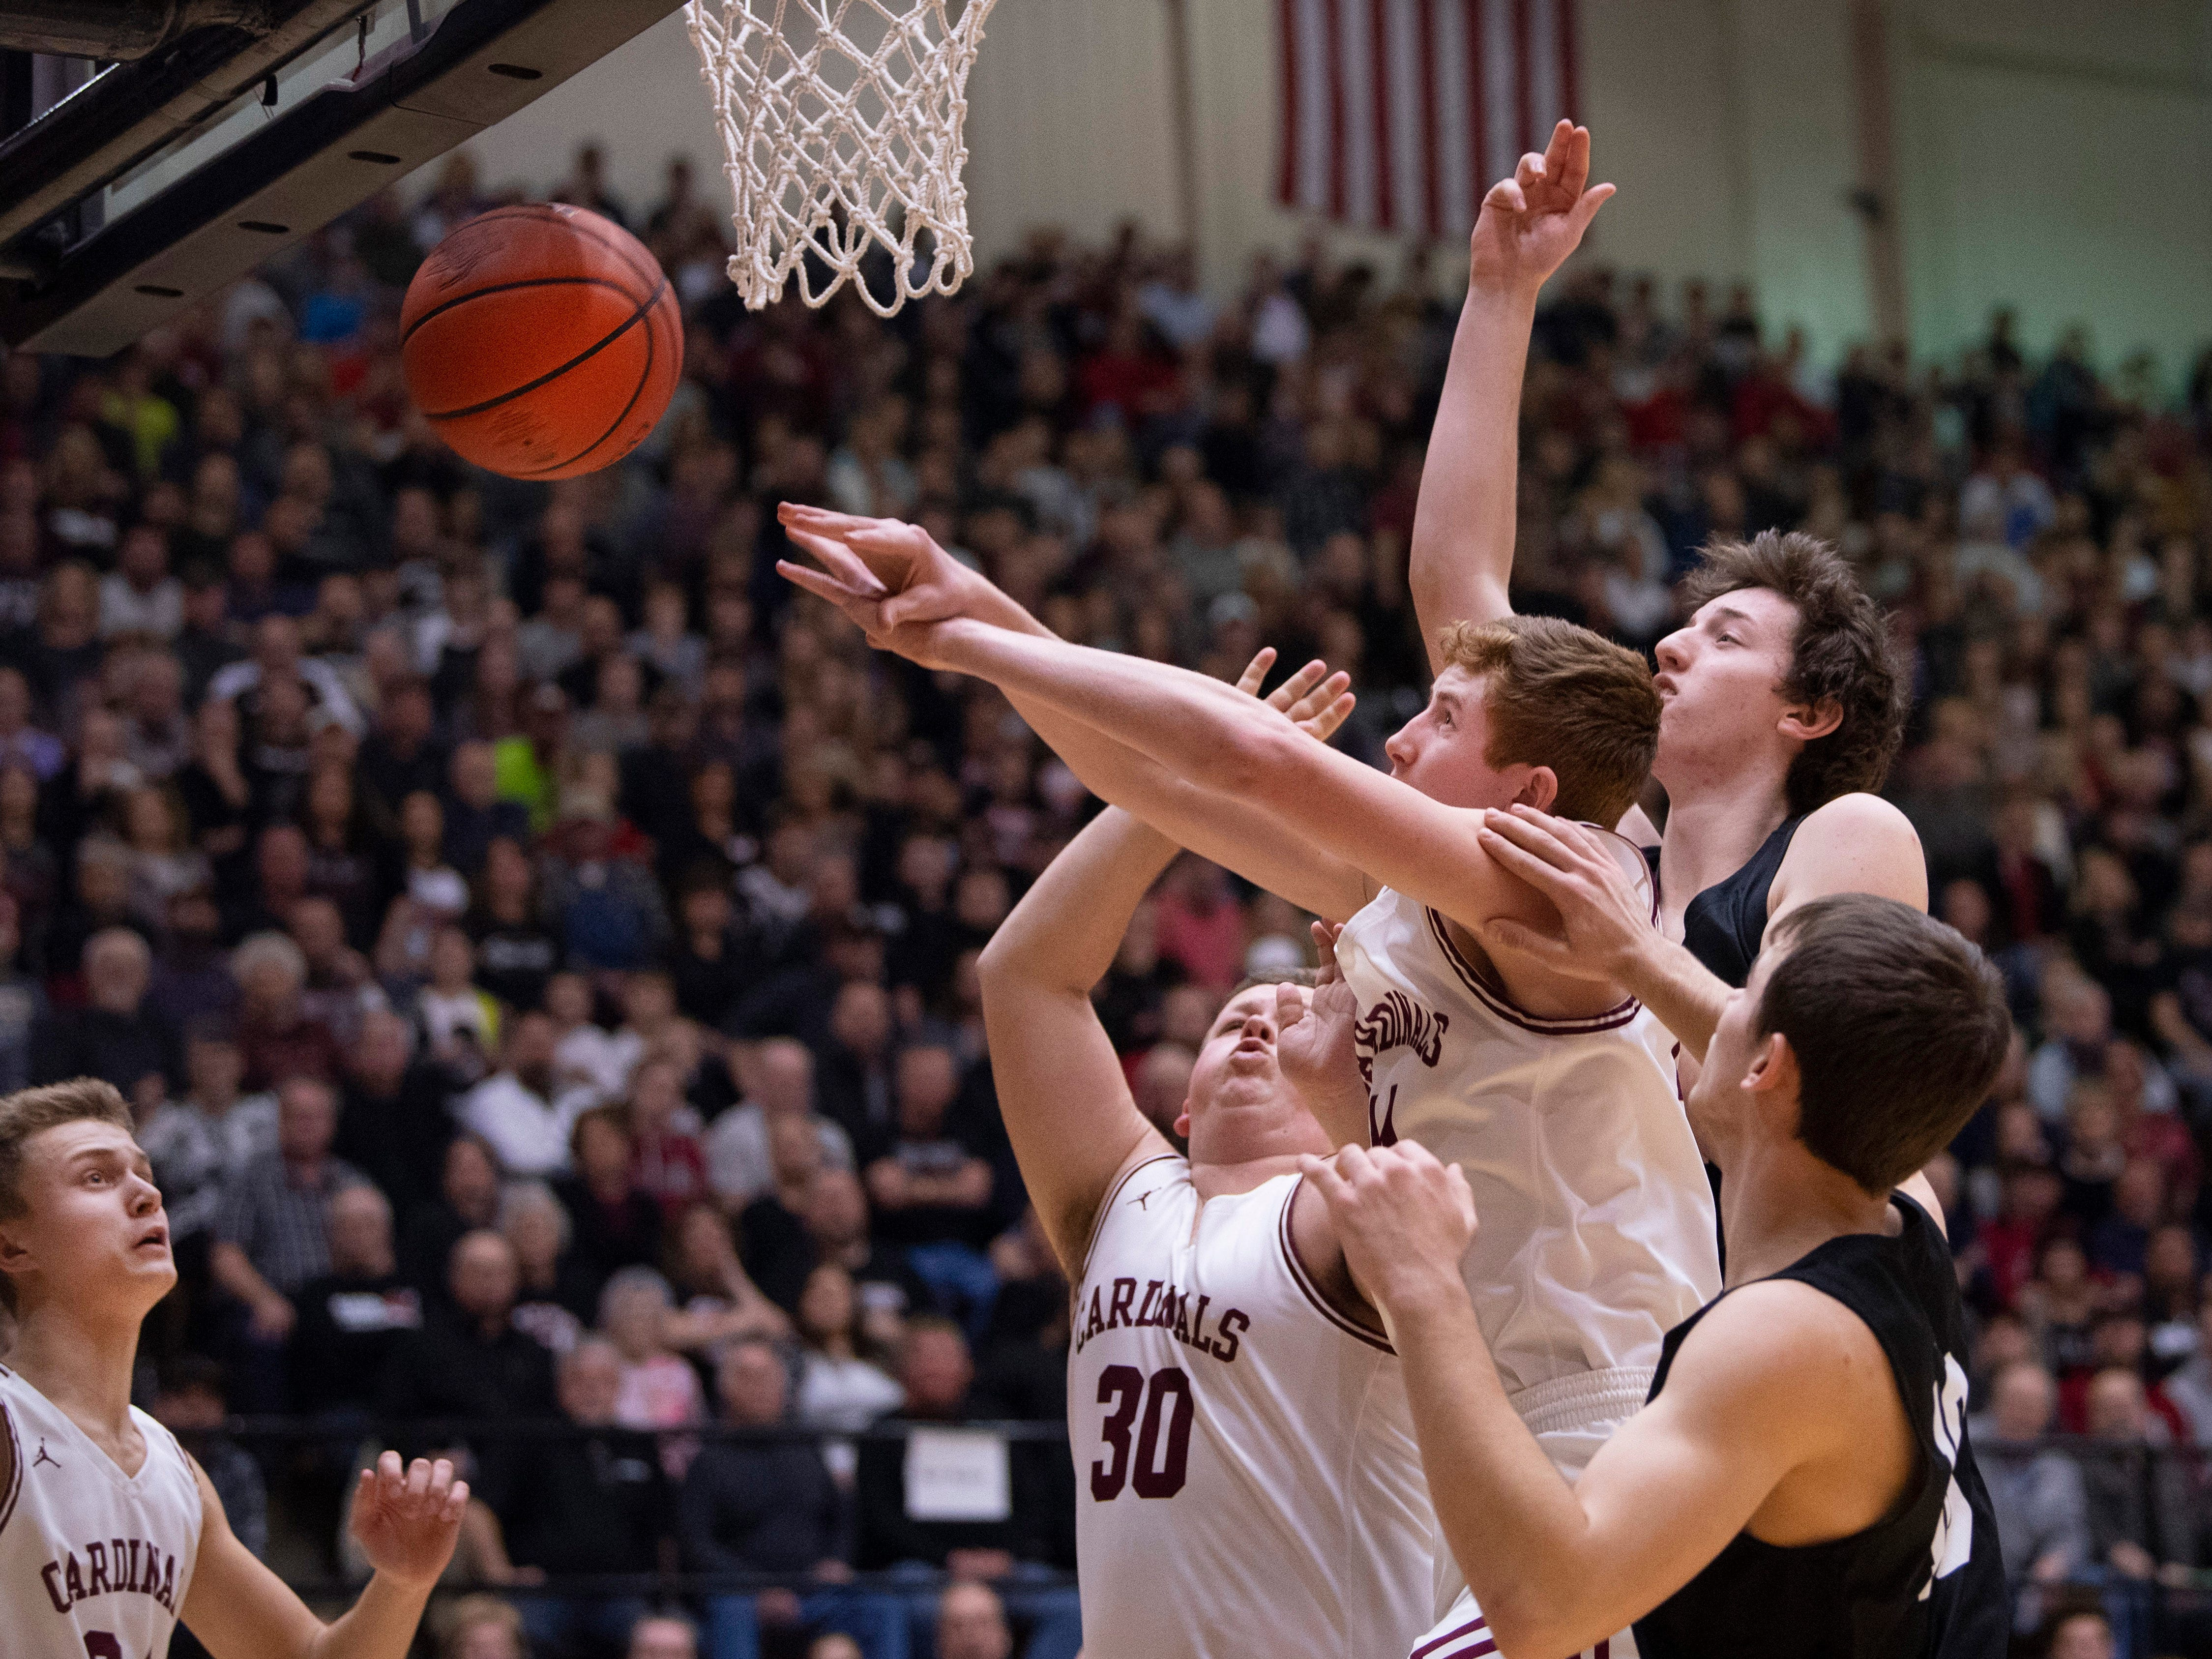 Points were hard to come by for Bloomfield against Barr-Reeve in the 1A Boys Indiana Semi-State Basketball Tournament at the Hatchet House in Washington, Ind., Saturday afternoon.